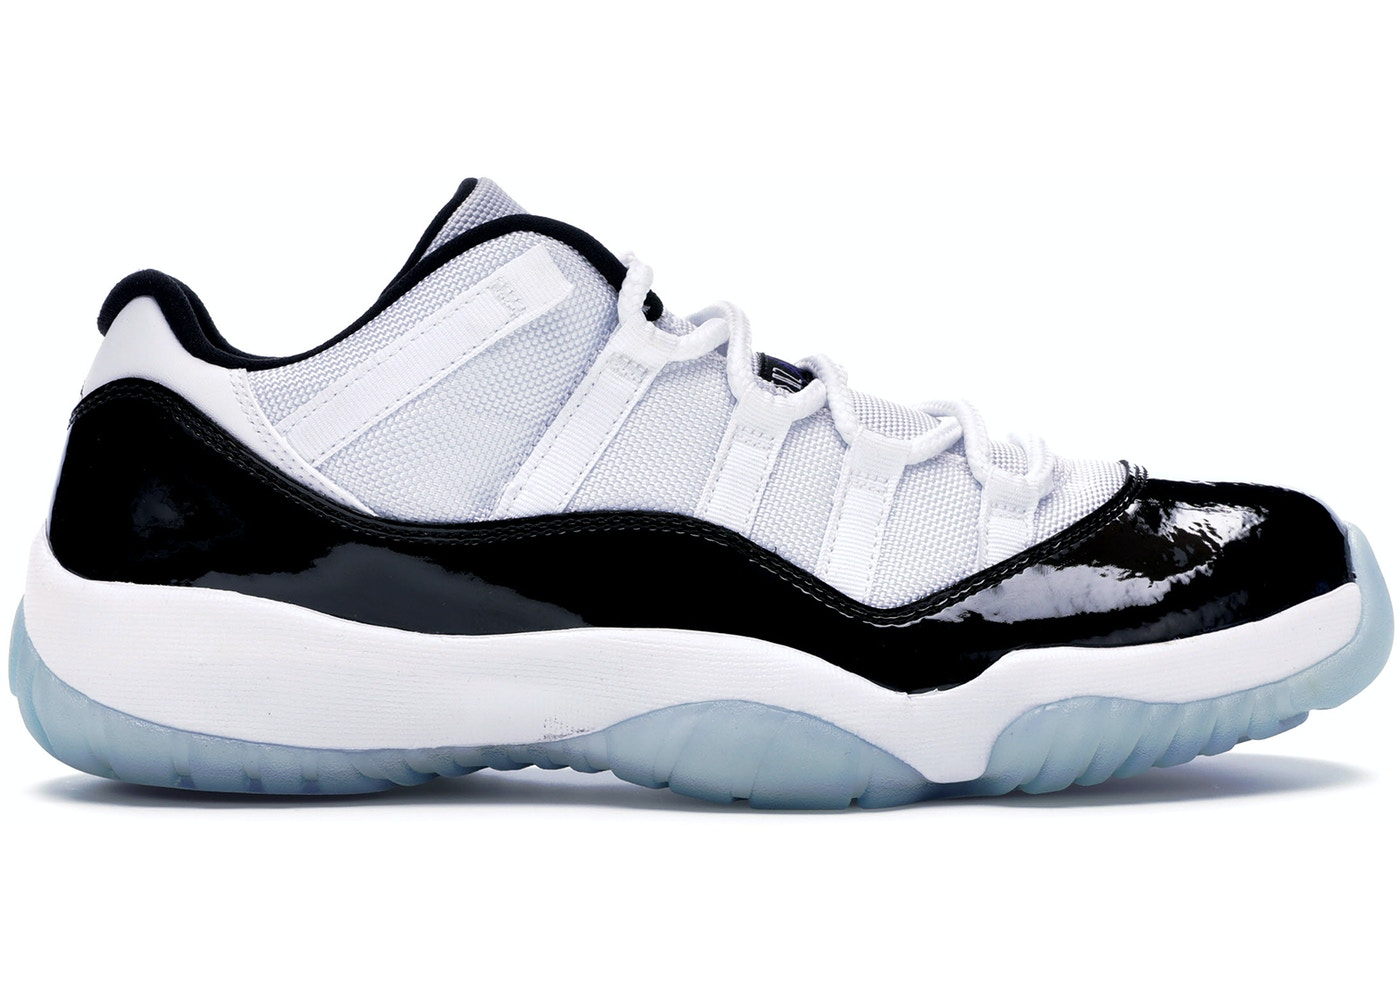 buying new sale usa online beauty Jordan 11 Retro Low Concord